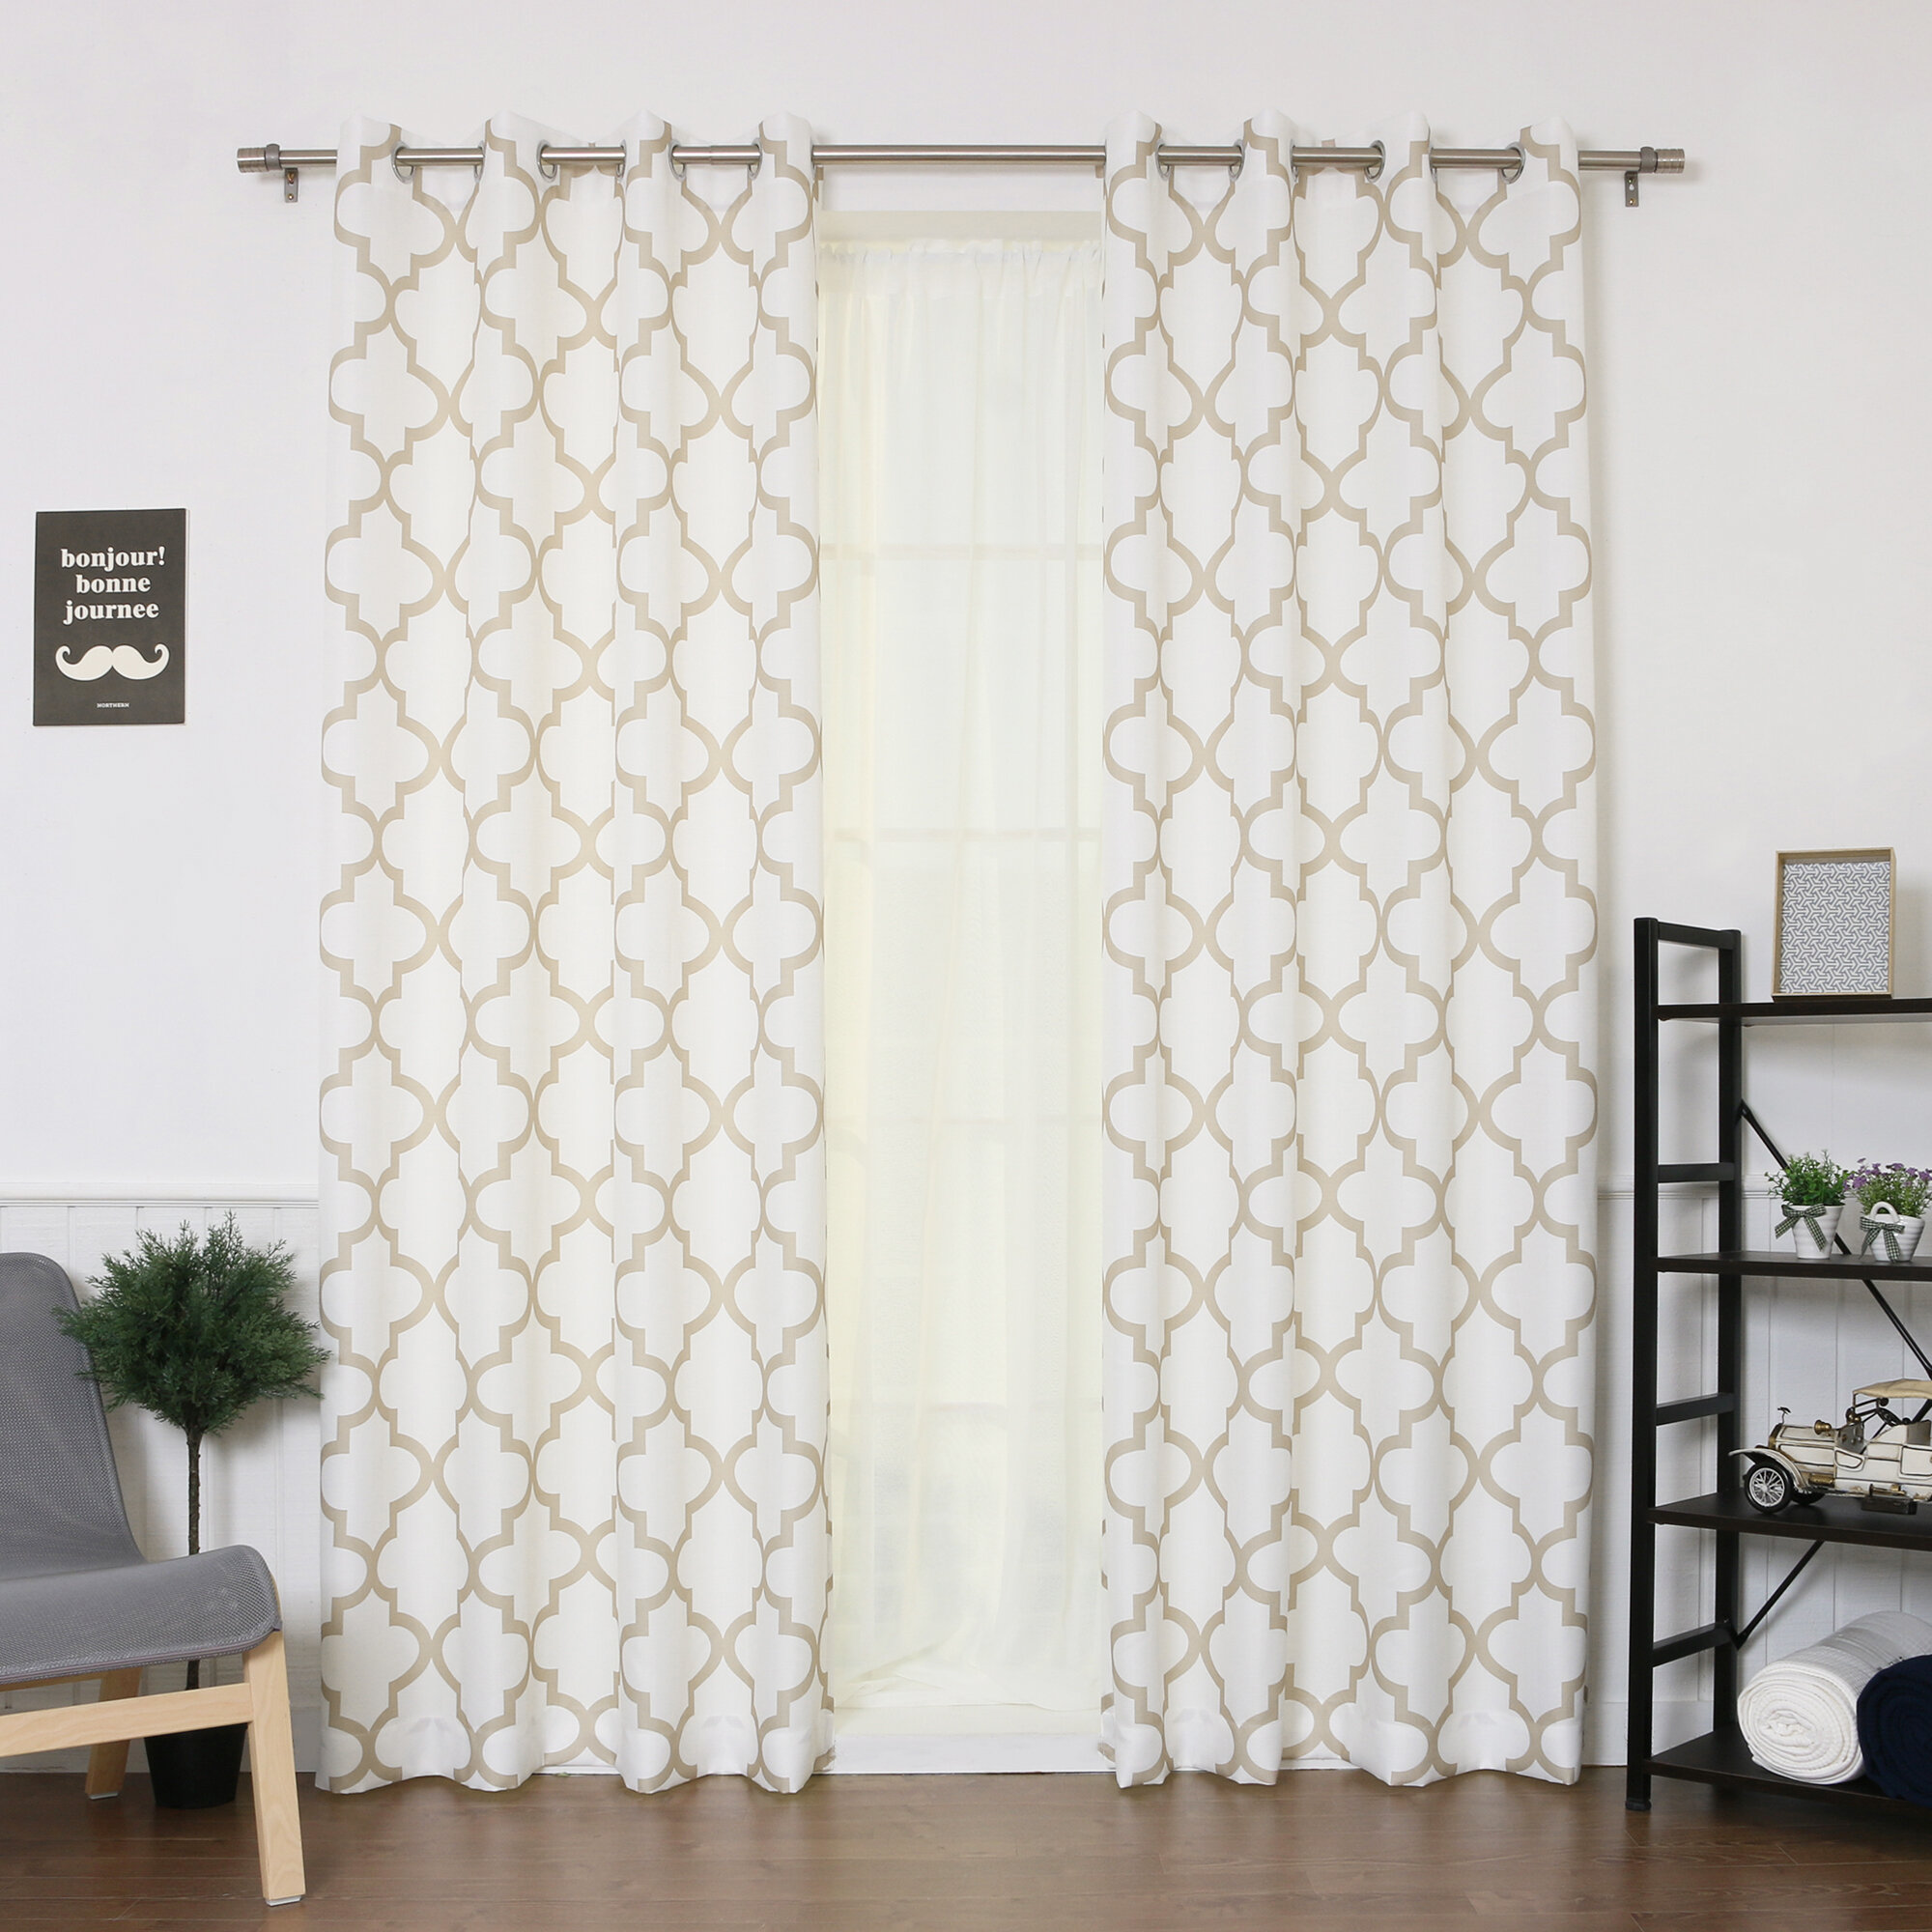 Arrey Basketweave Geometric Room Darkening Grommet Curtain Panel Reviews